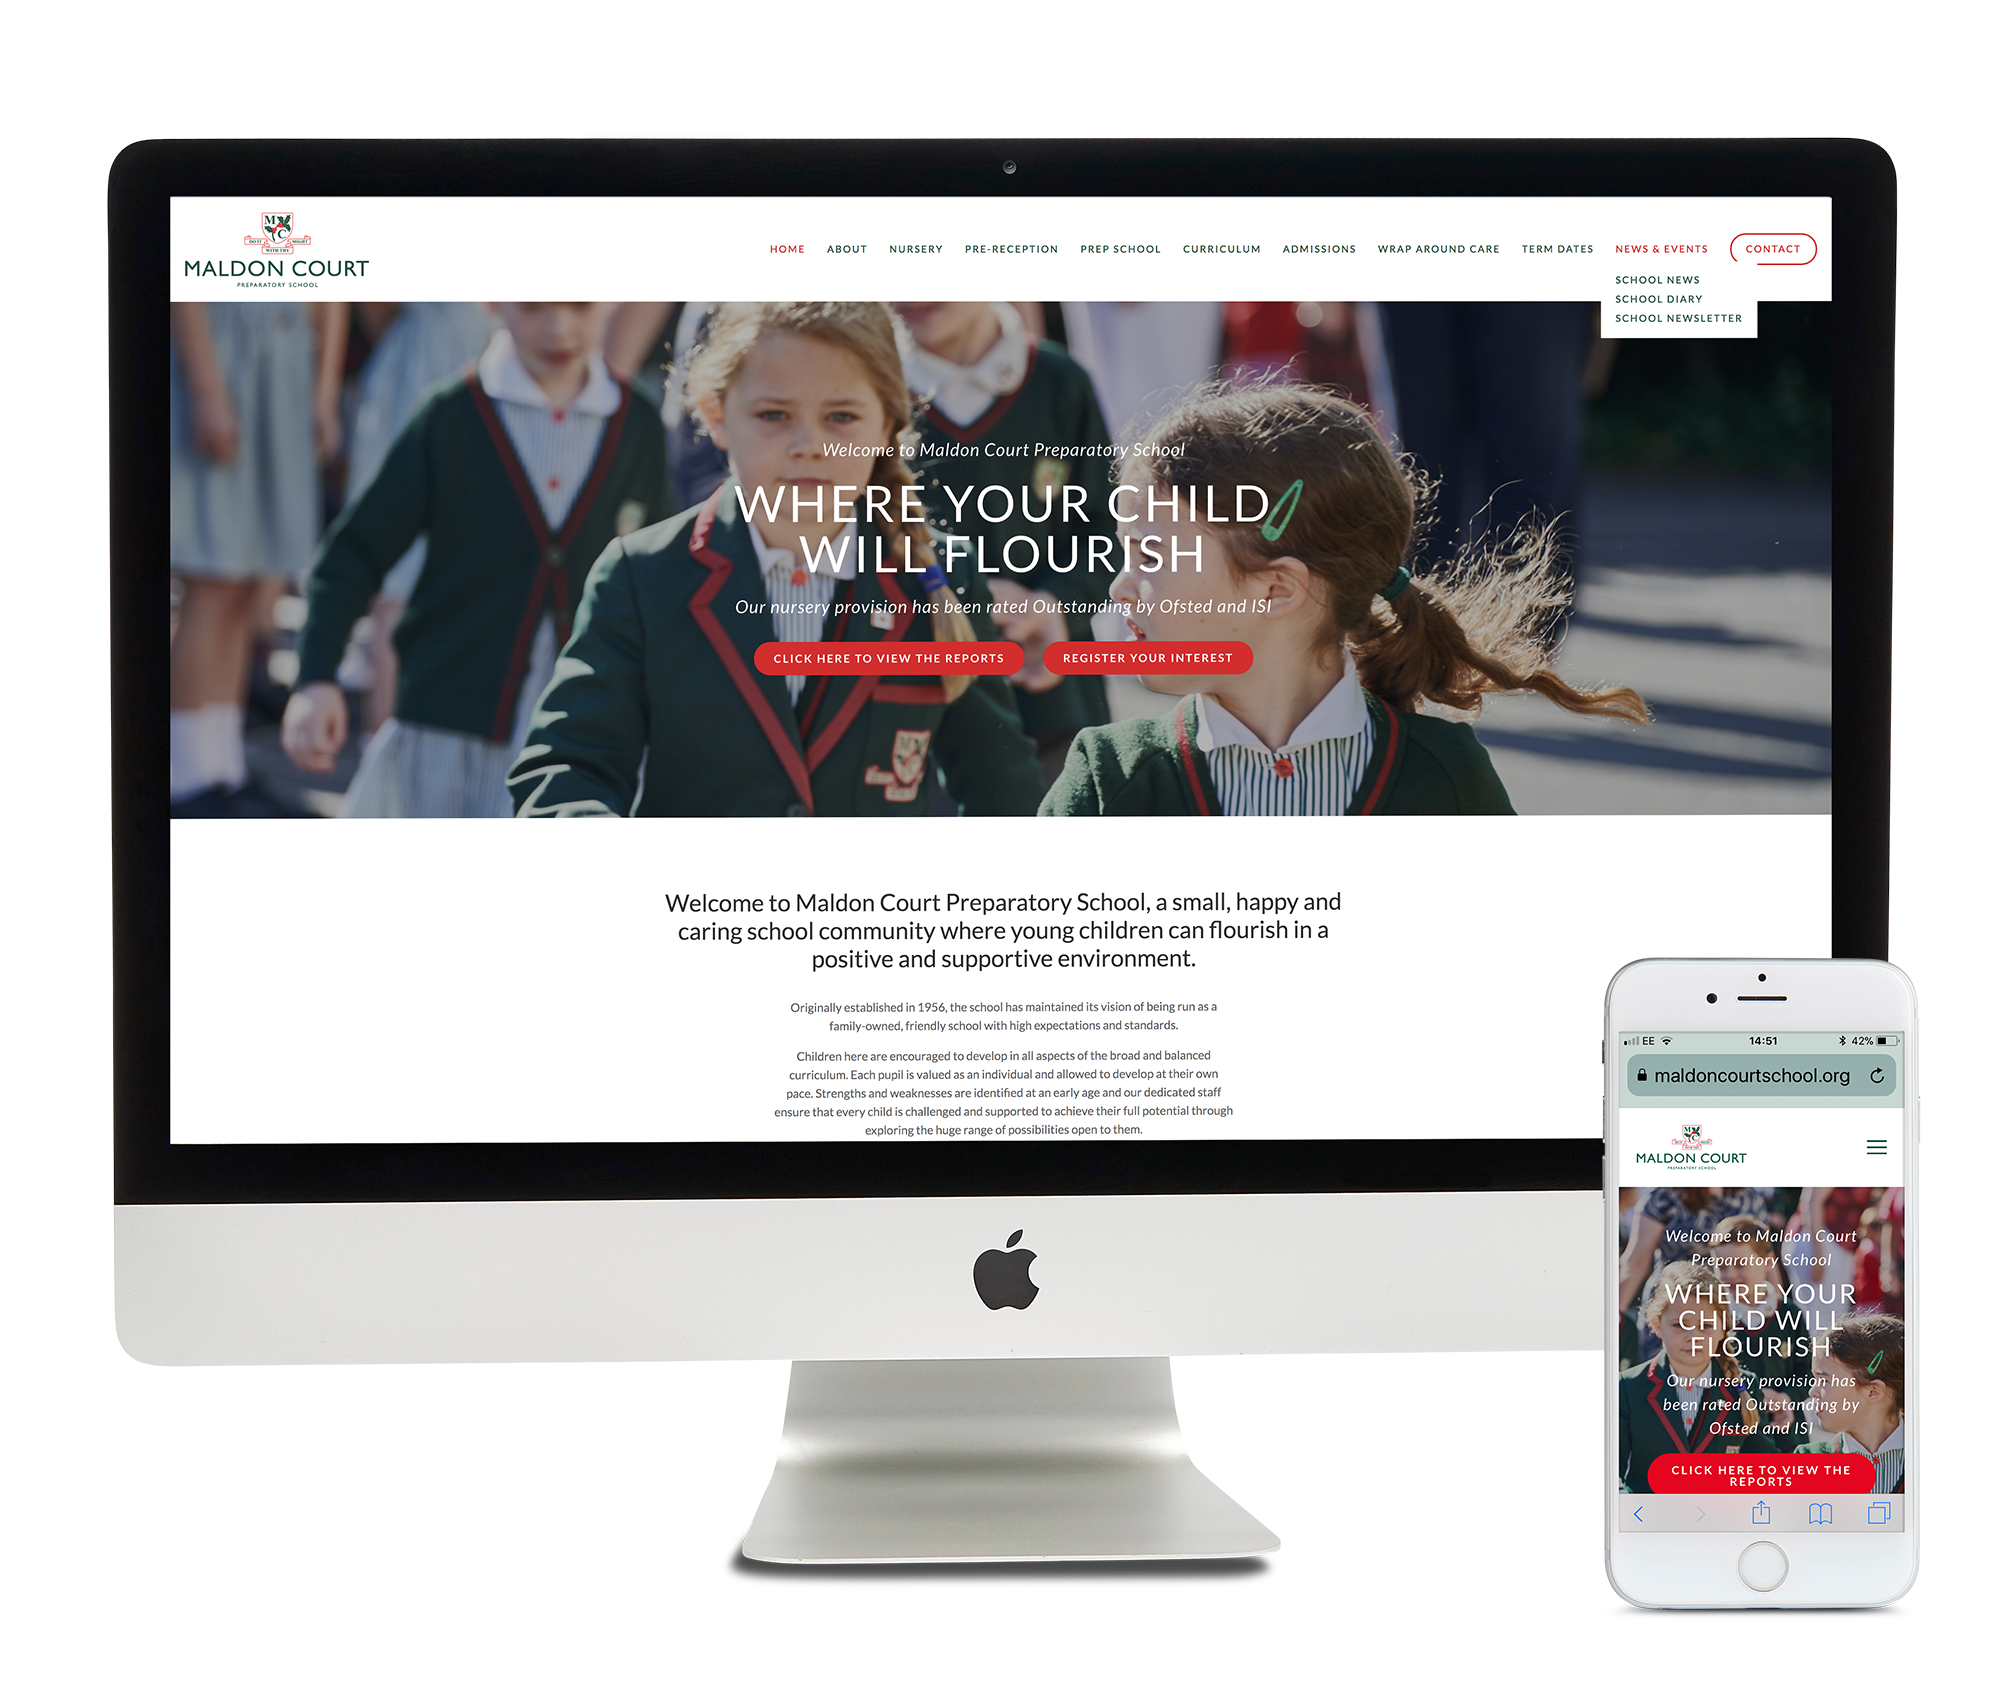 maldon-court-preparatory-school-website.png